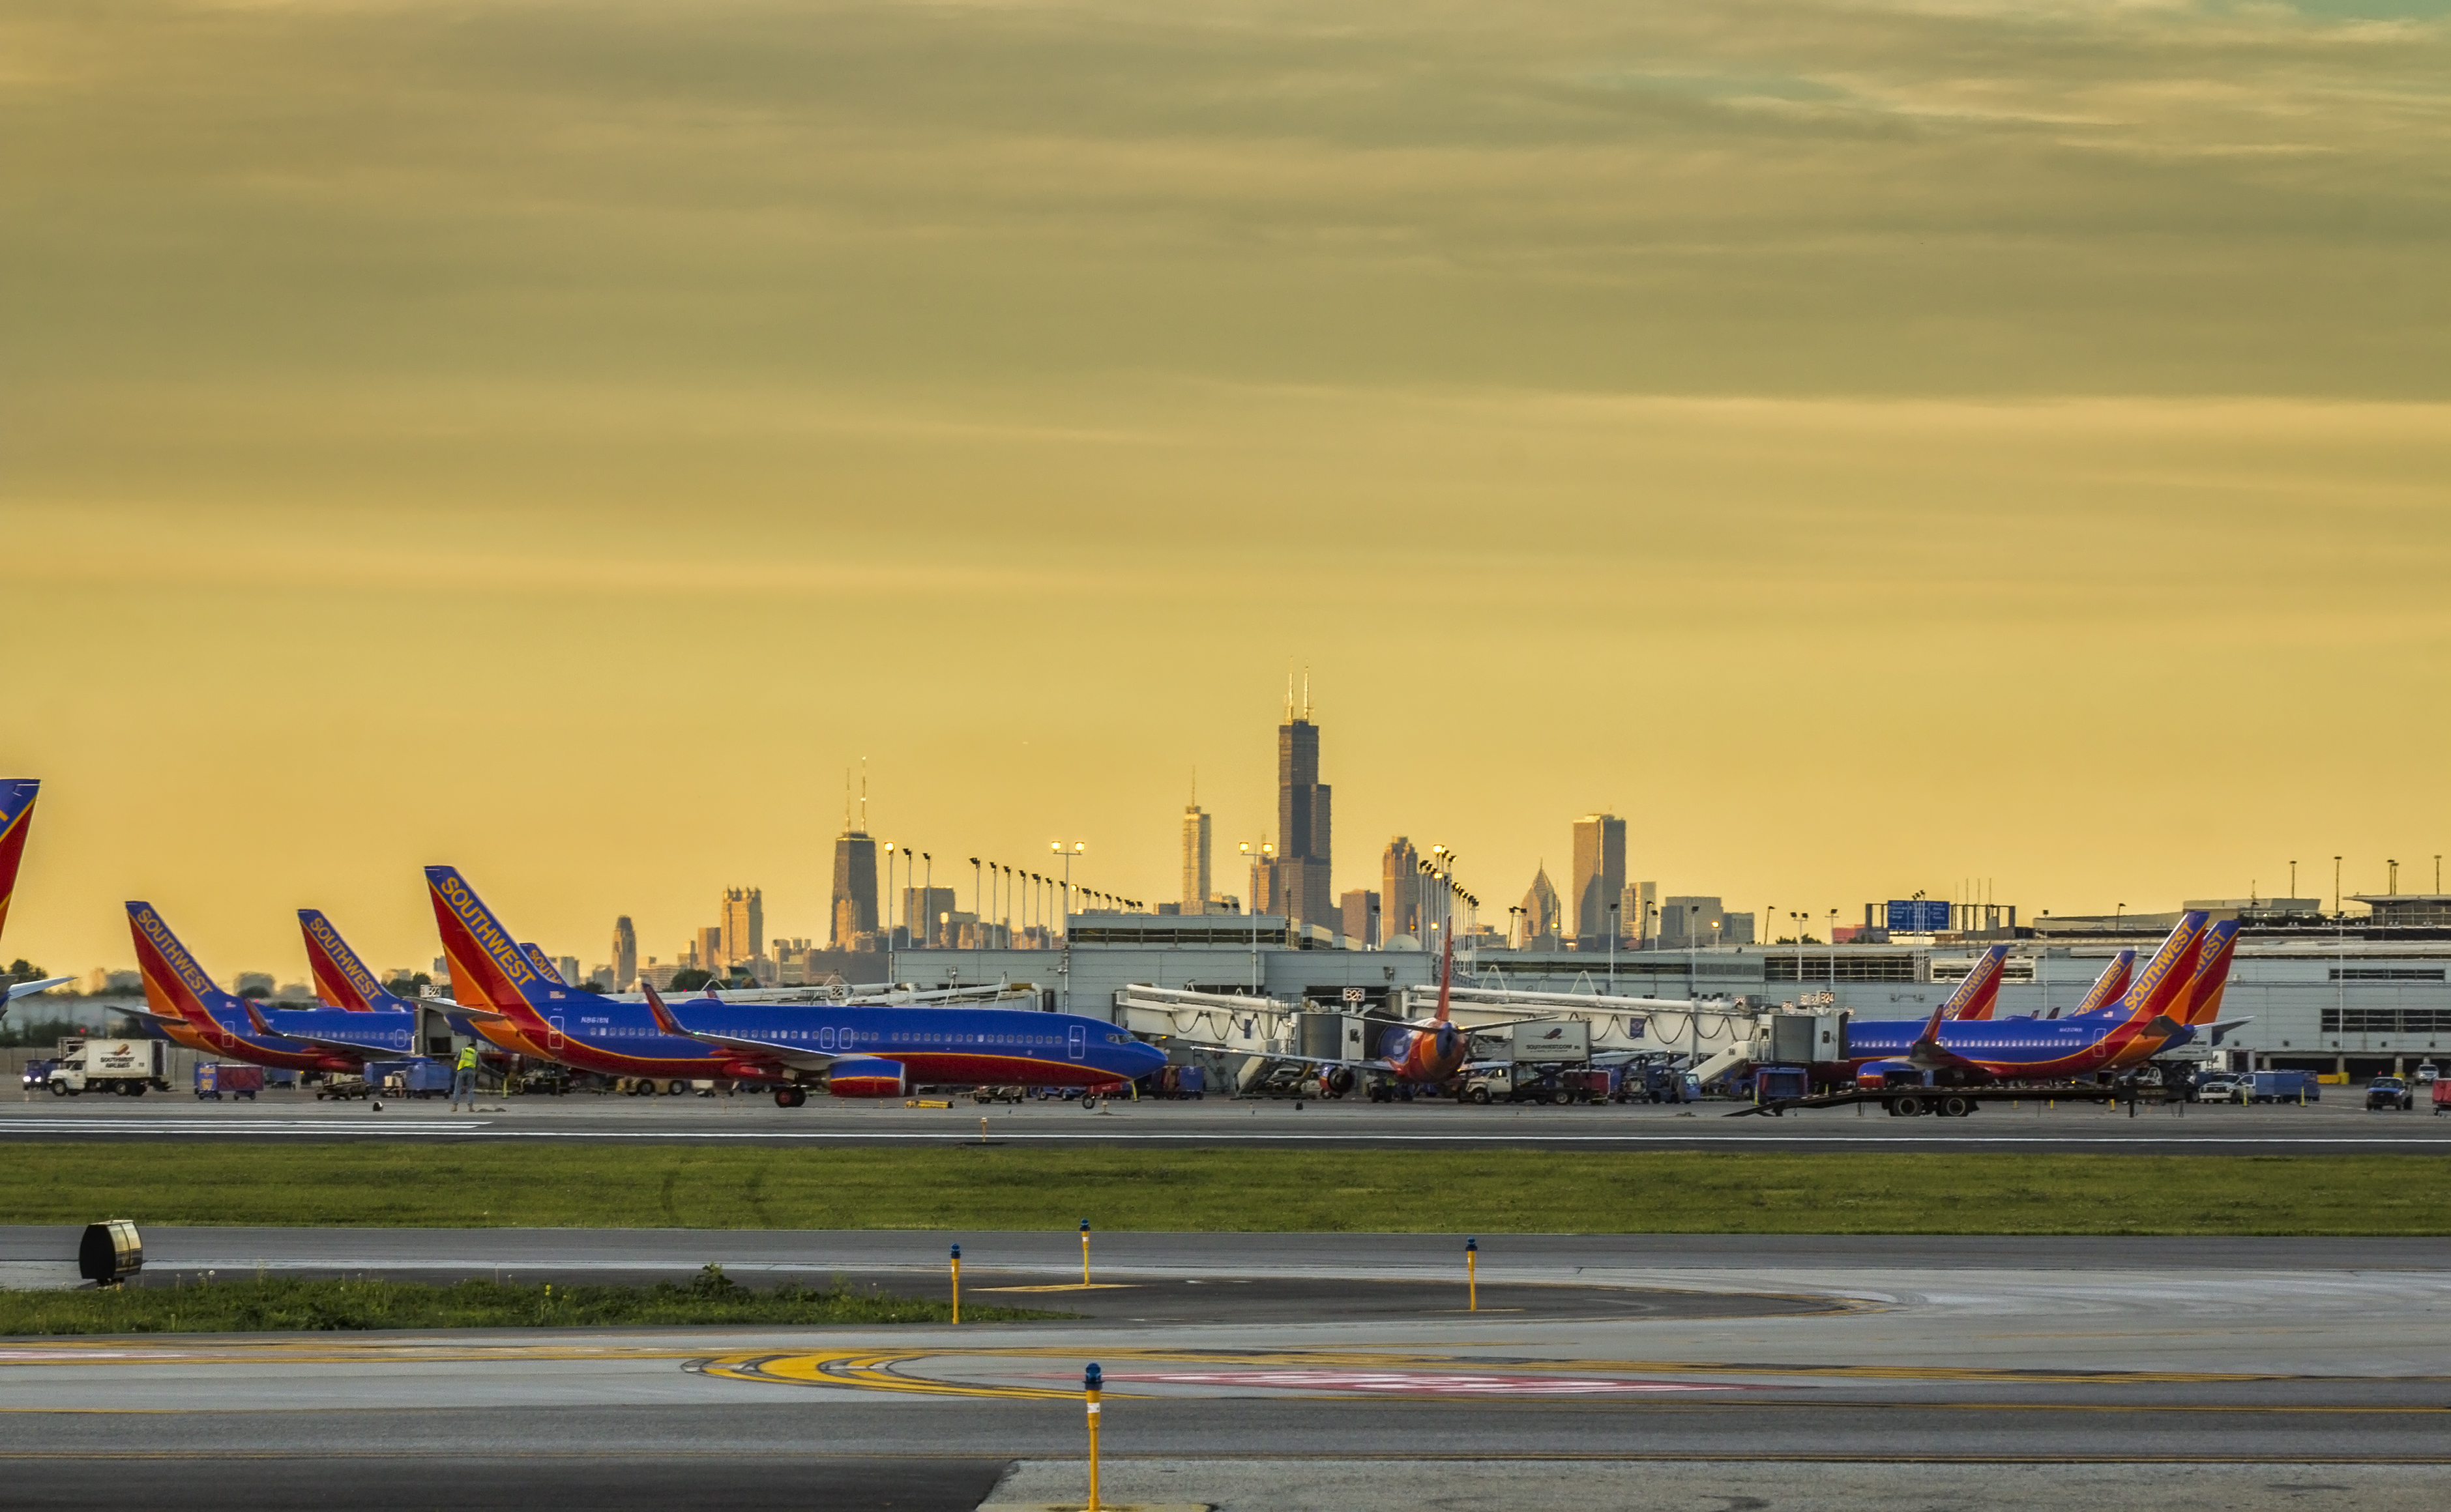 Planes parked at Midway International Airport with the city's skyline in the background.